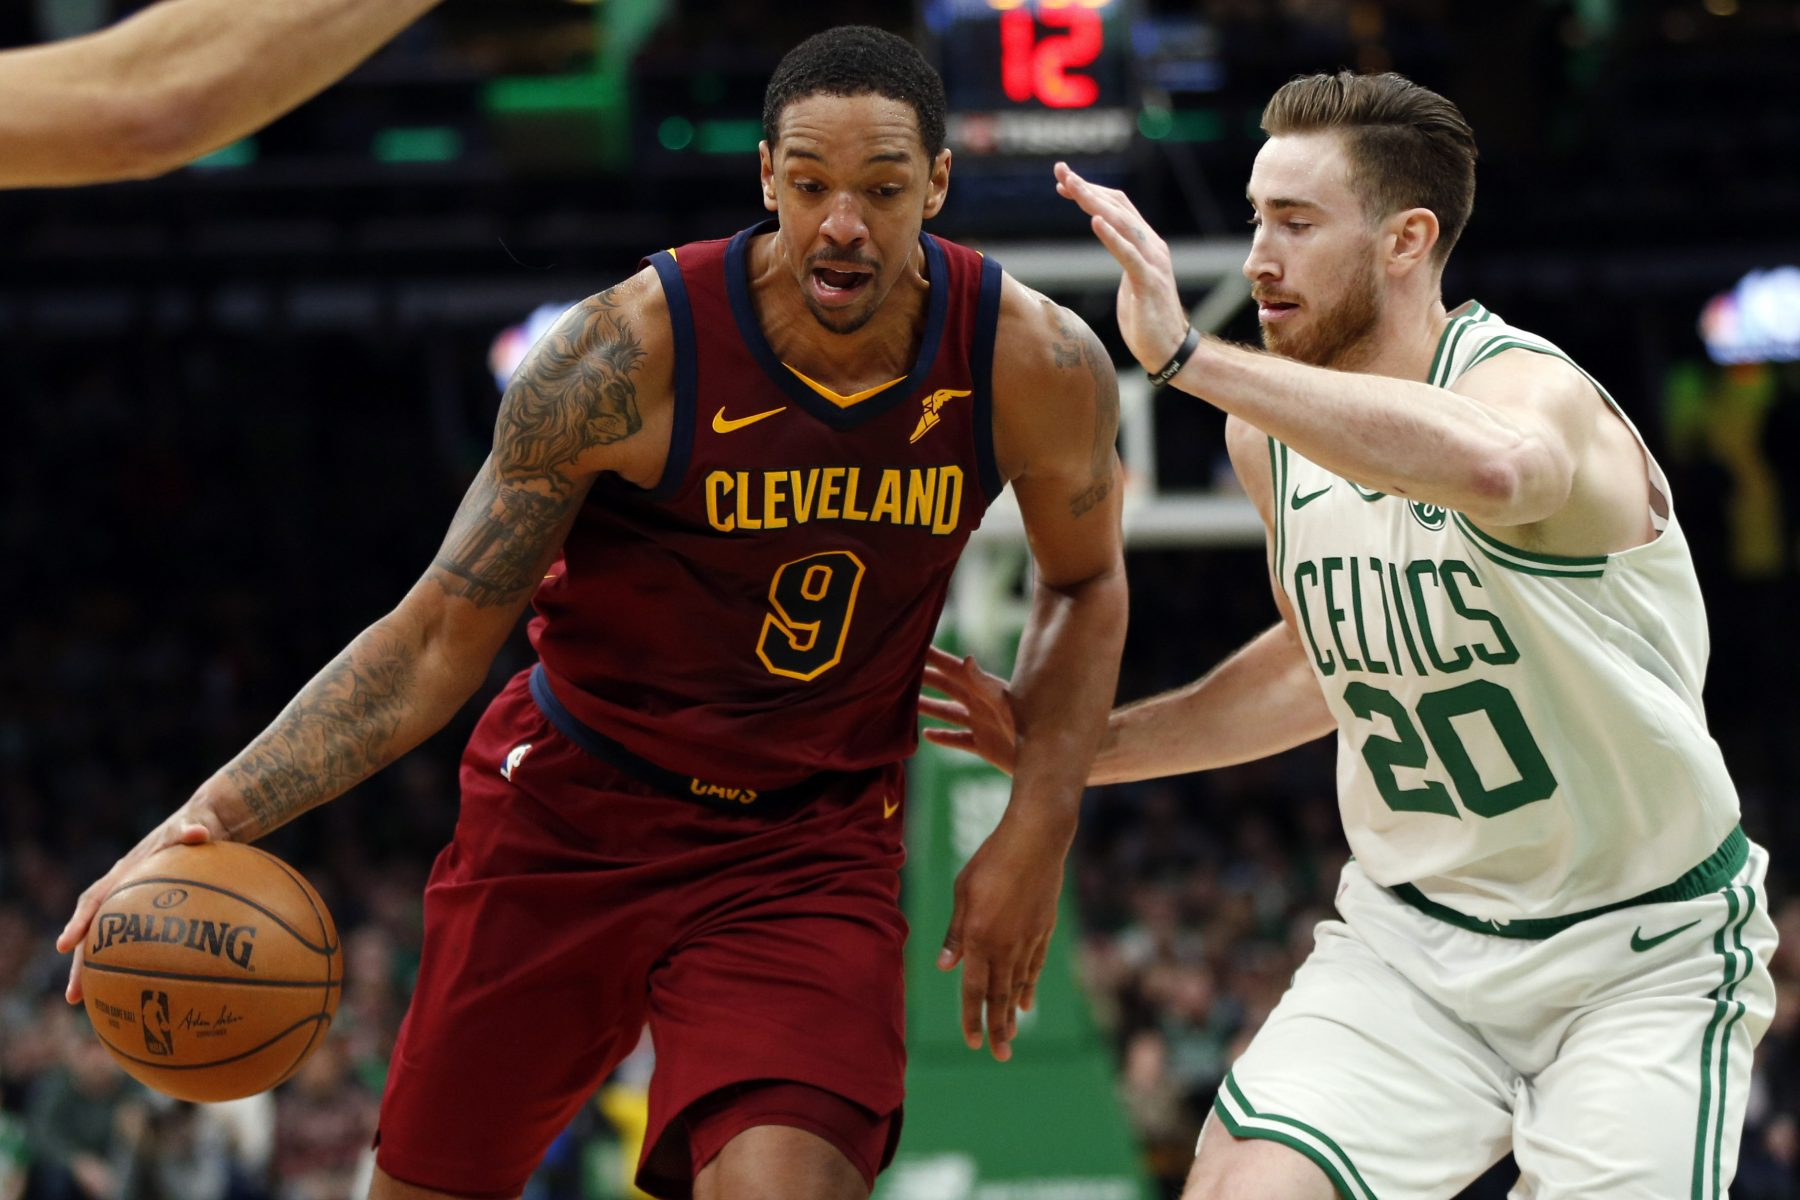 Channing Frye and Gordon Hayward